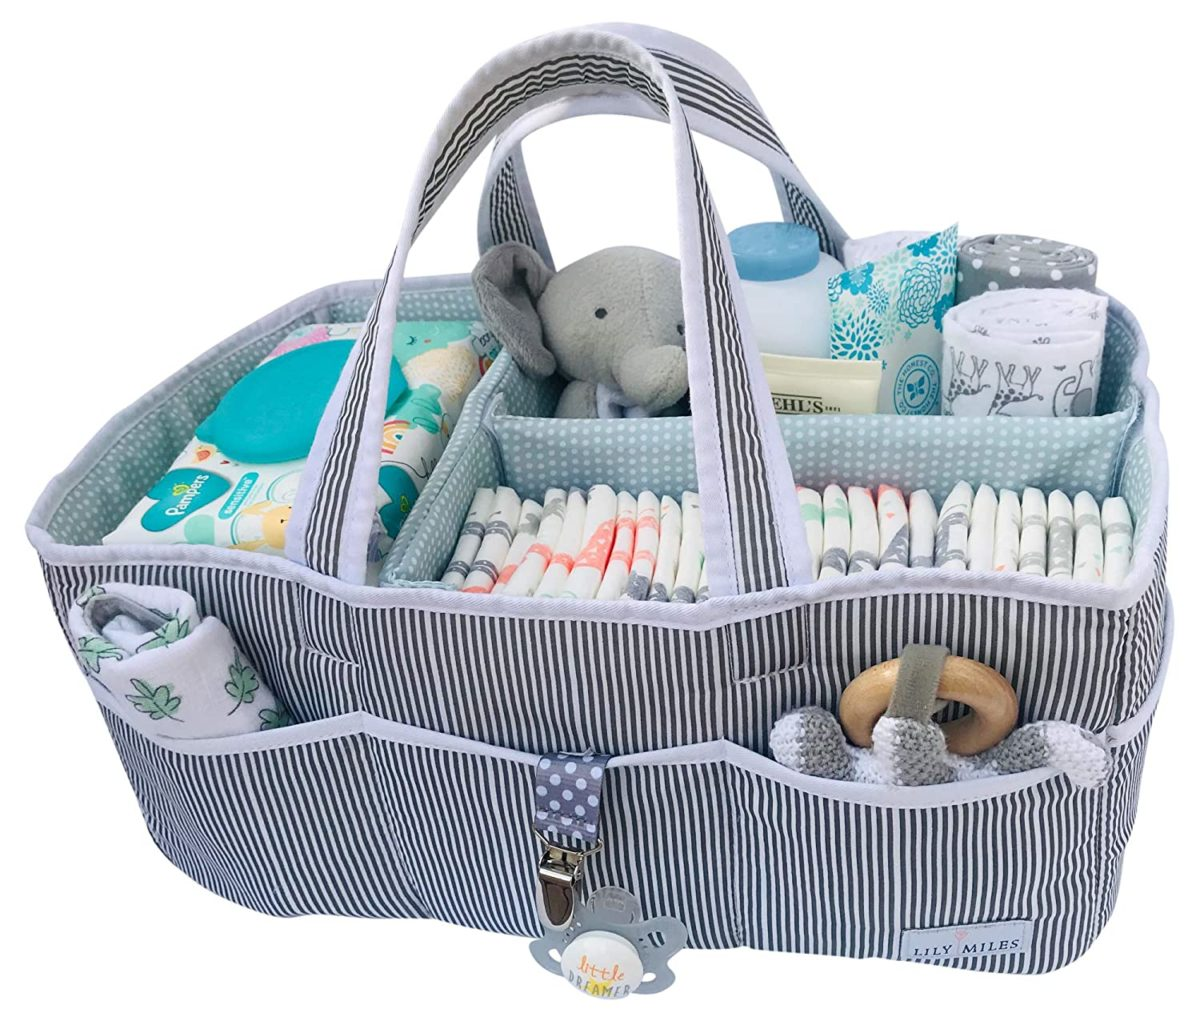 35 best baby shower gifts if mama-to-be does not have a registry